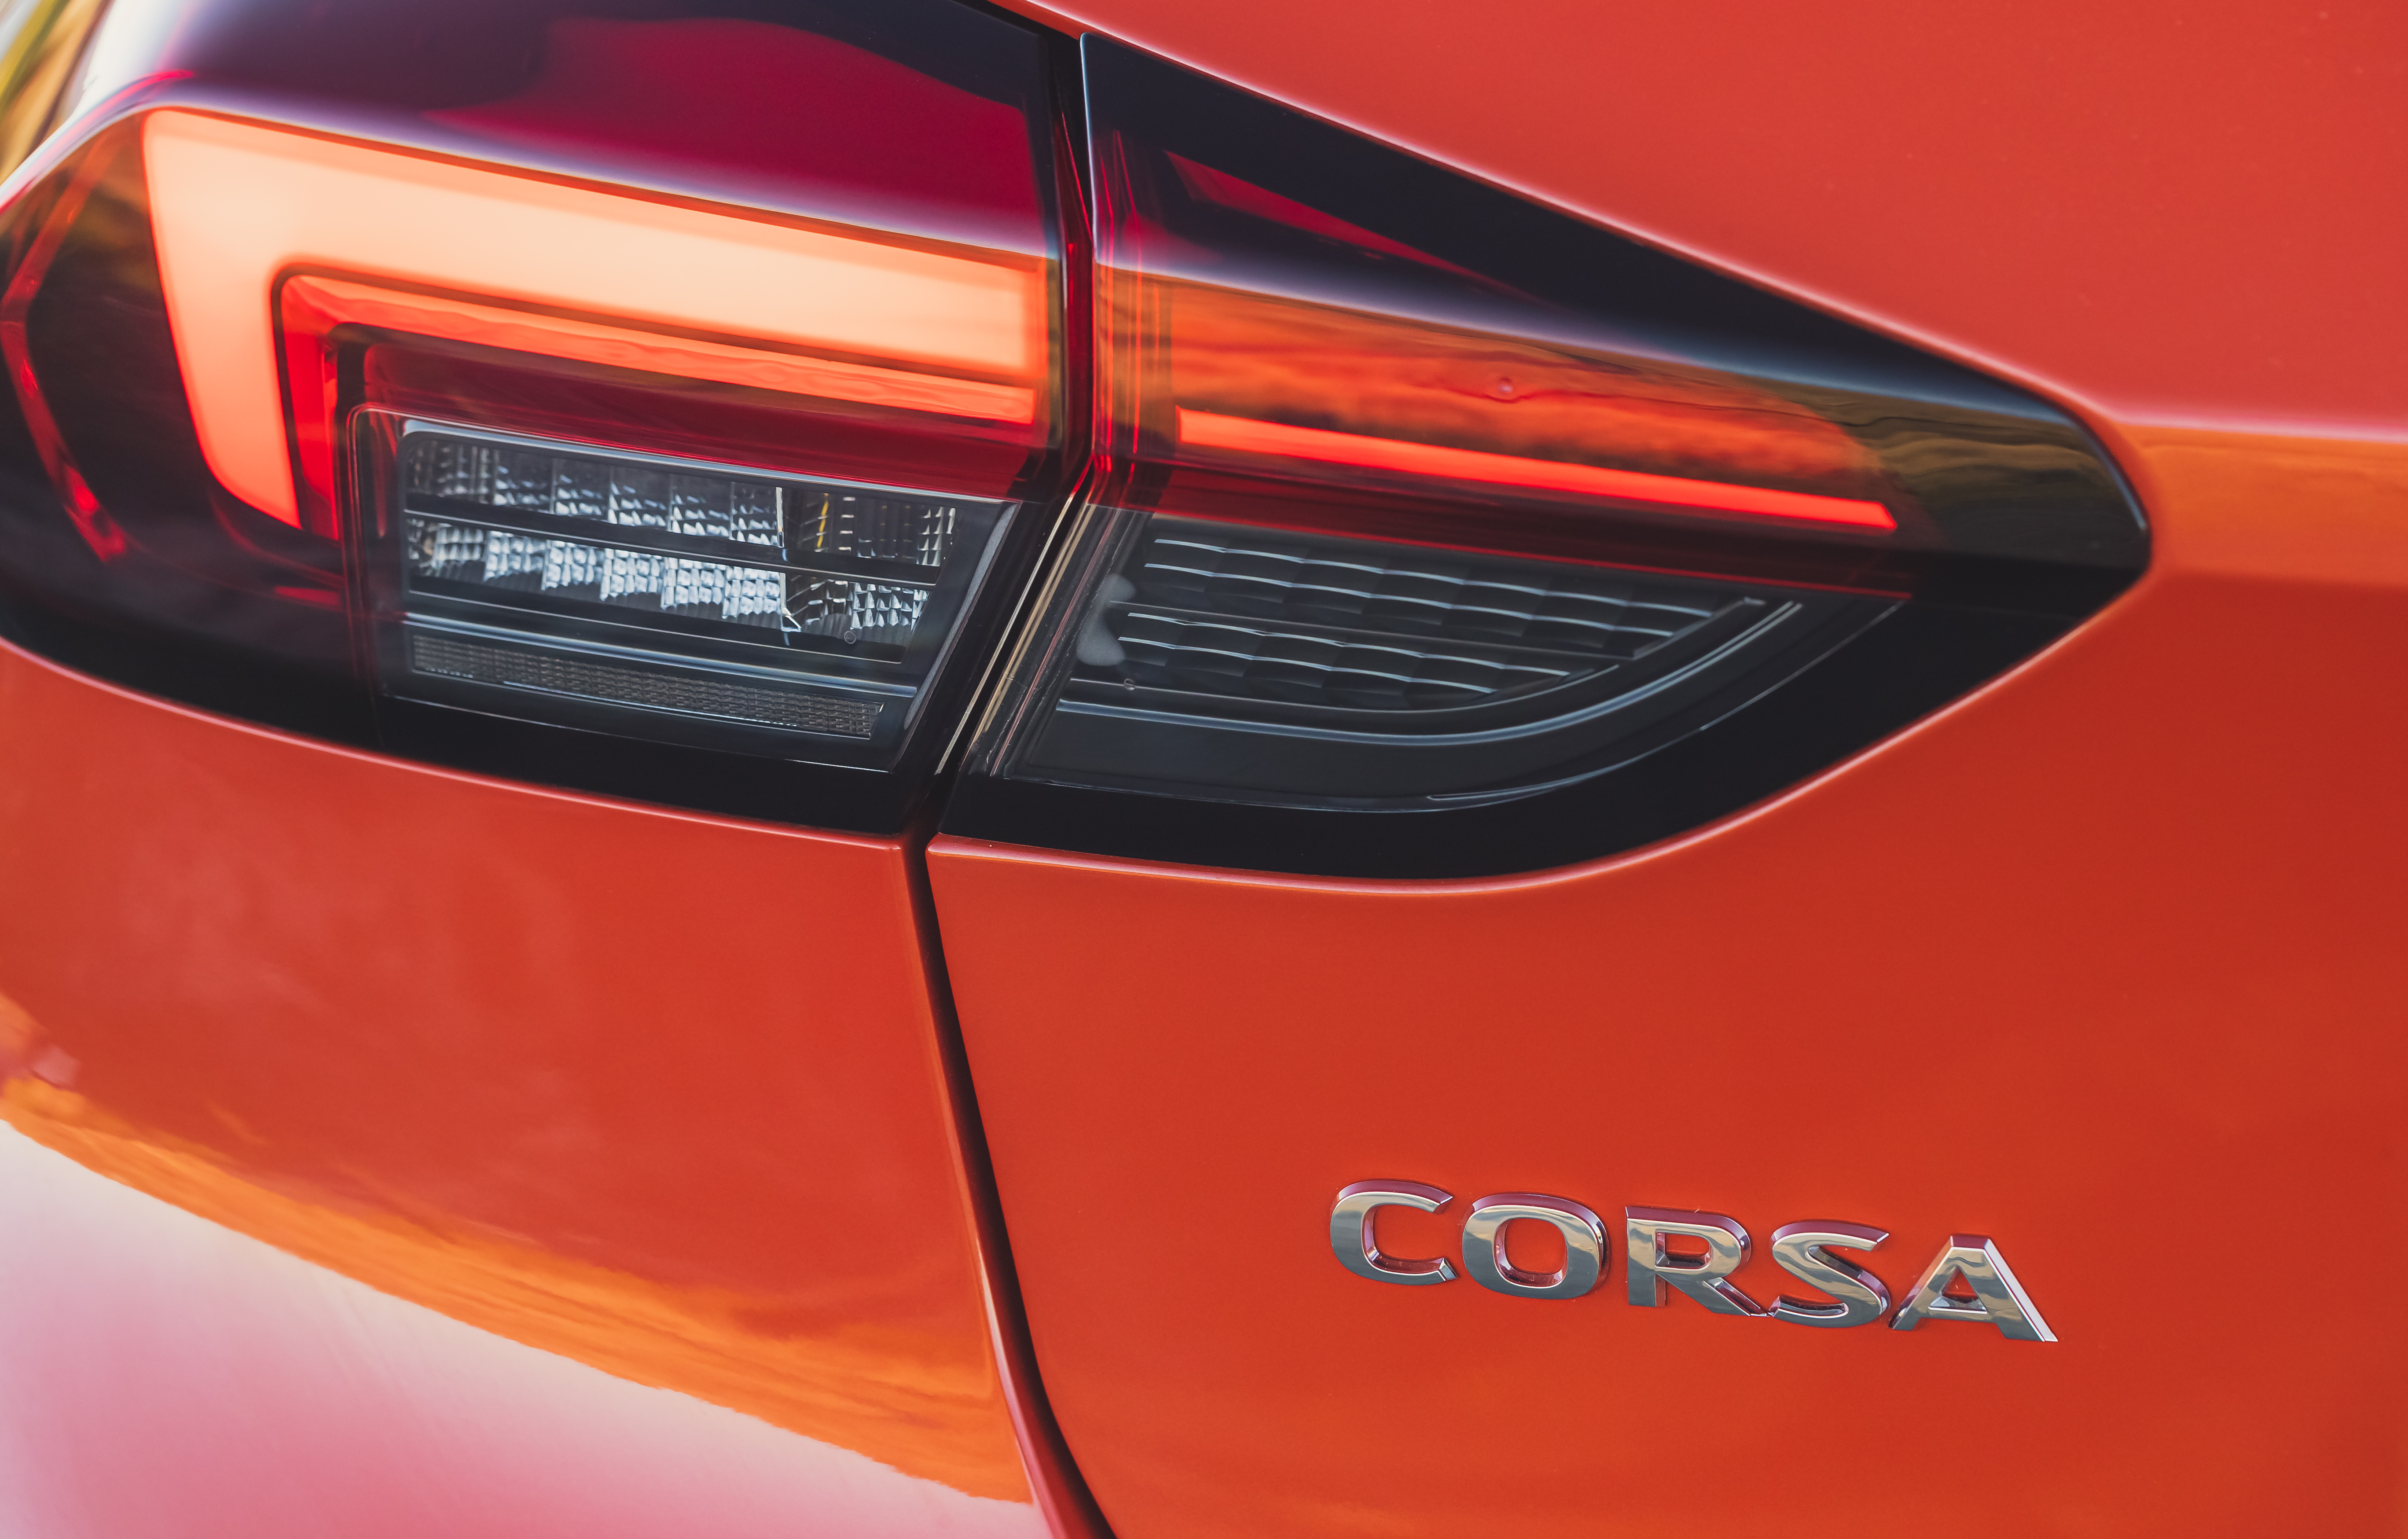 The Corsa is a household name in the UK